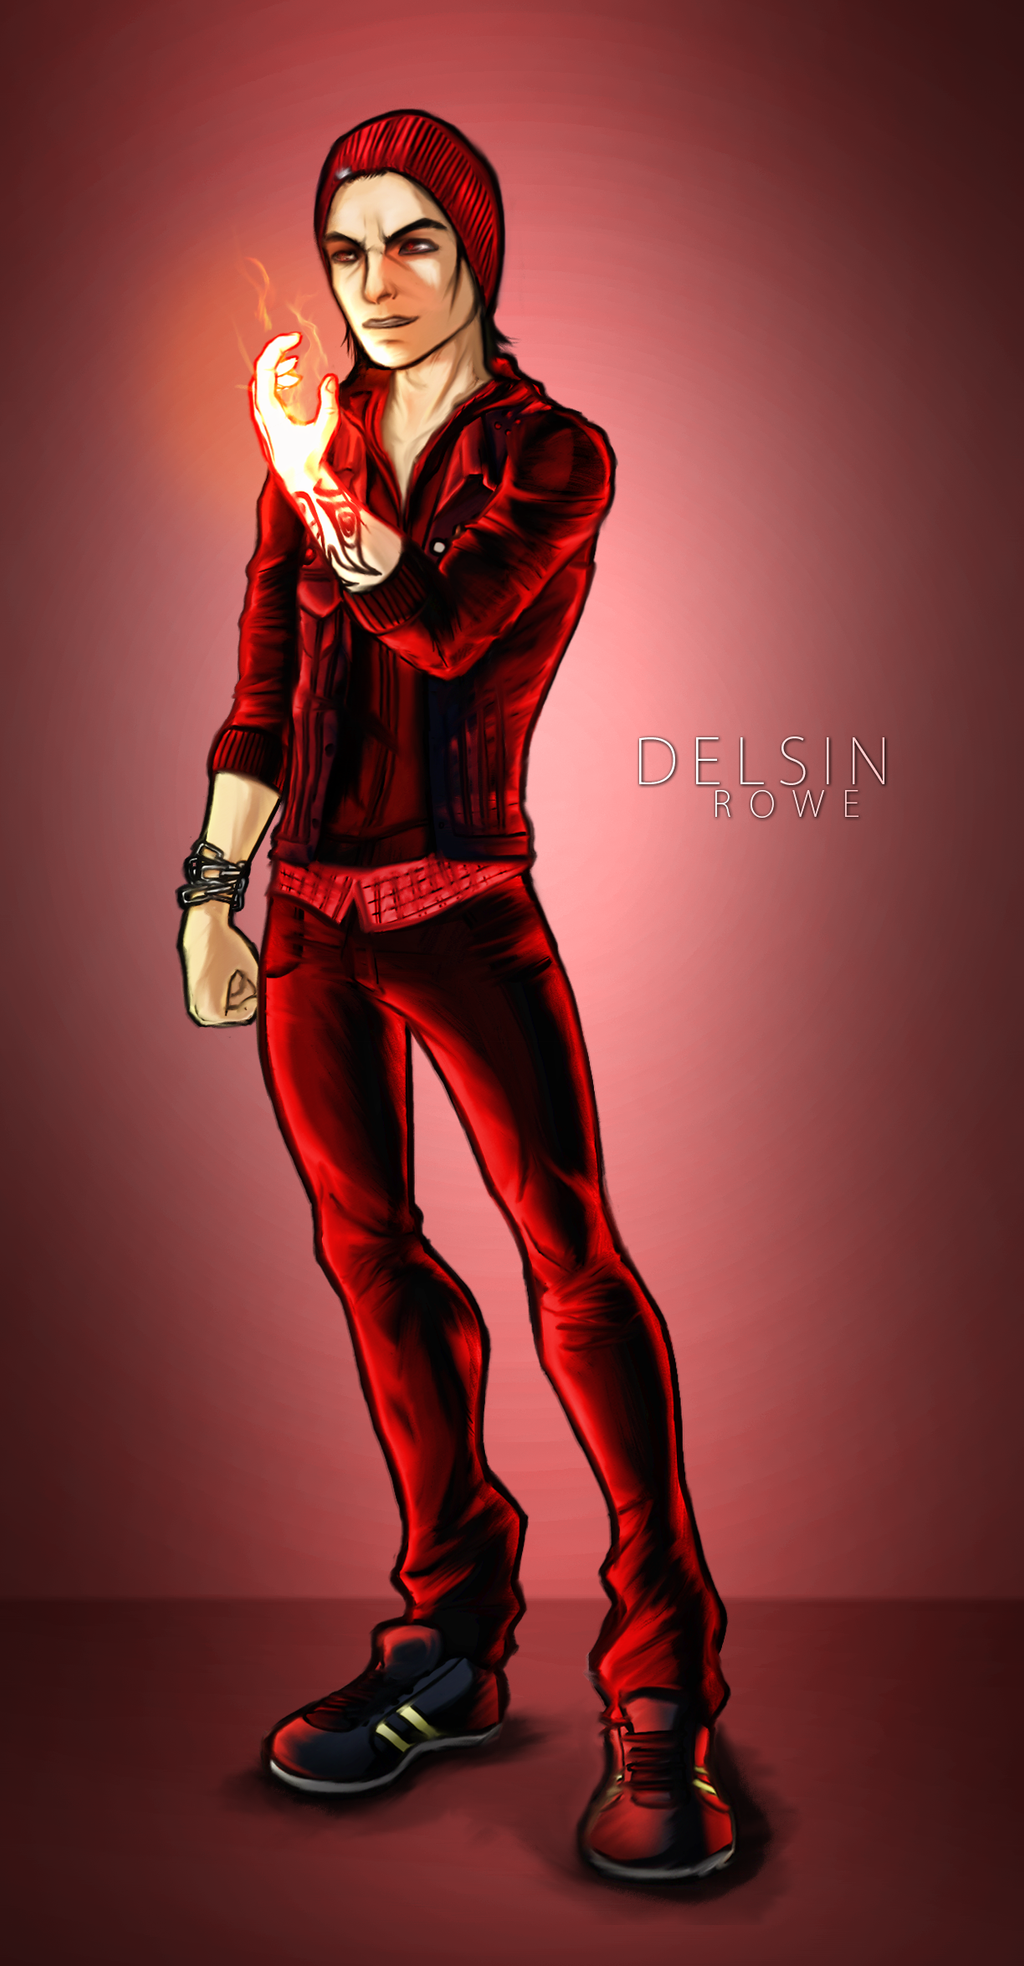 delsin and fetch relationship with god